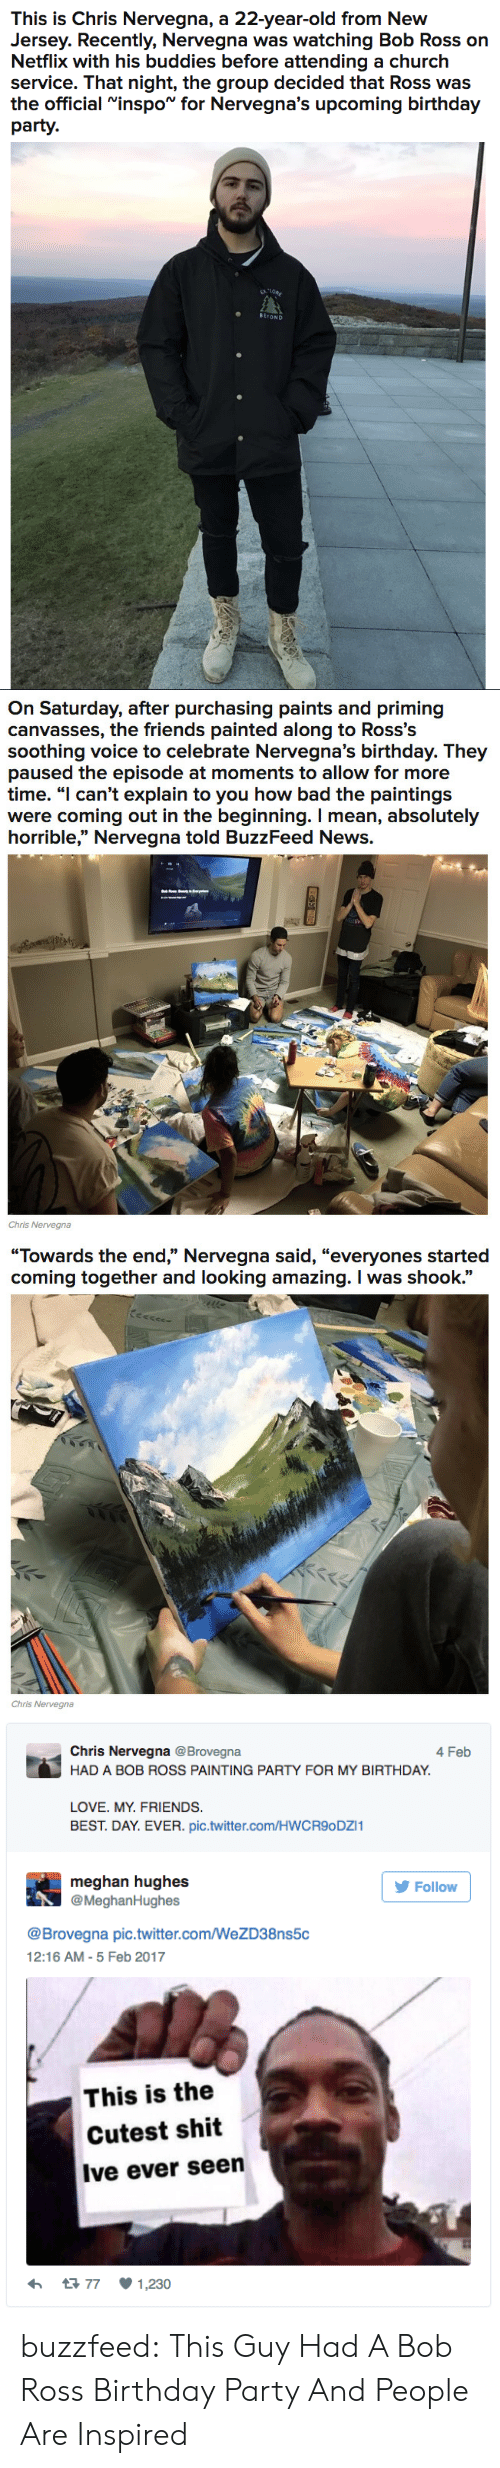 """Bad, Birthday, and Church: This is Chris Nervegna, a 22-year-old from New  Jersey. Recently, Nervegna was watching Bob Ross on  Netflix with his buddies before attending a church  service. That night, the group decided that Ross was  the official Ninspo for Nervegna's upcoming birthday  party.  BEYOND   On Saturday, after purchasing paints and priming  canvasses, the friends painted along to Ross'S  soothing voice to celebrate Nervegna's birthday. They  paused the episode at moments to allow for more  time. """"l can't explain to you how bad the paintings  were coming out in the beginning. I mean, absolutely  horrible,"""" Nervegna told BuzzFeed News.  Chris Nervegna   """"Towards the end,"""" Nervegna said, """"everyones started  coming together and looking amazing. I was shook.  Chris Nervegna   Chris Nervegna @Brovegna  HAD A BOB ROSS PAINTING PARTY FOR MY BIRTHDAY  4 Feb  LOVE. MY. FRIENDS.  BEST. DAY. EVER. pic.twitter.com/HWCR9oDZI1  meghan hughes  @MeghanHughes  Follow  @Brovegna pic.twitter.com/WeZD38ns5c  12:16 AM-5 Feb 2017  This is the  Cutest shit  Ive ever seen  77  1,230 buzzfeed: This Guy Had A Bob Ross Birthday Party And People Are Inspired"""